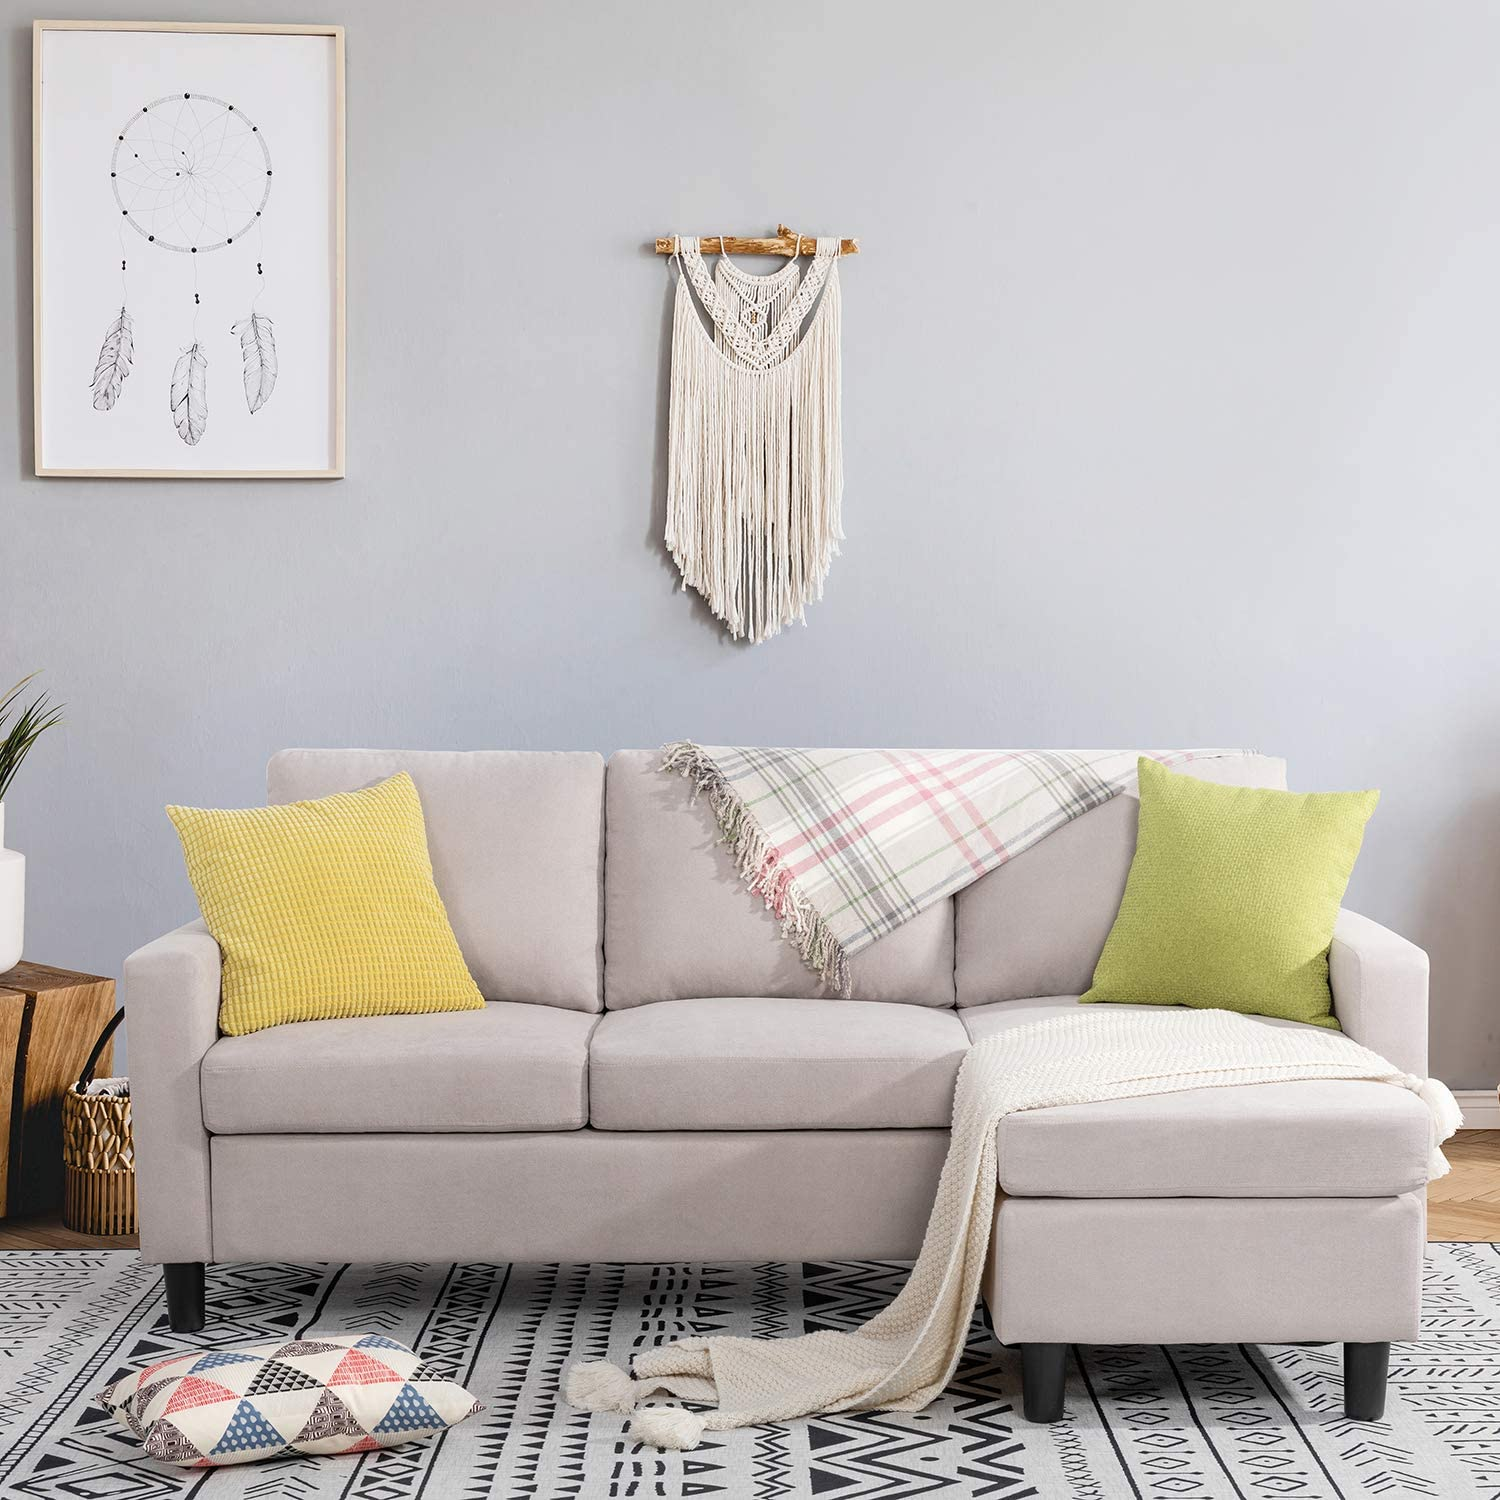 Best Small Sofa: Shintenchi Convertible Small Space Sofa Couch.